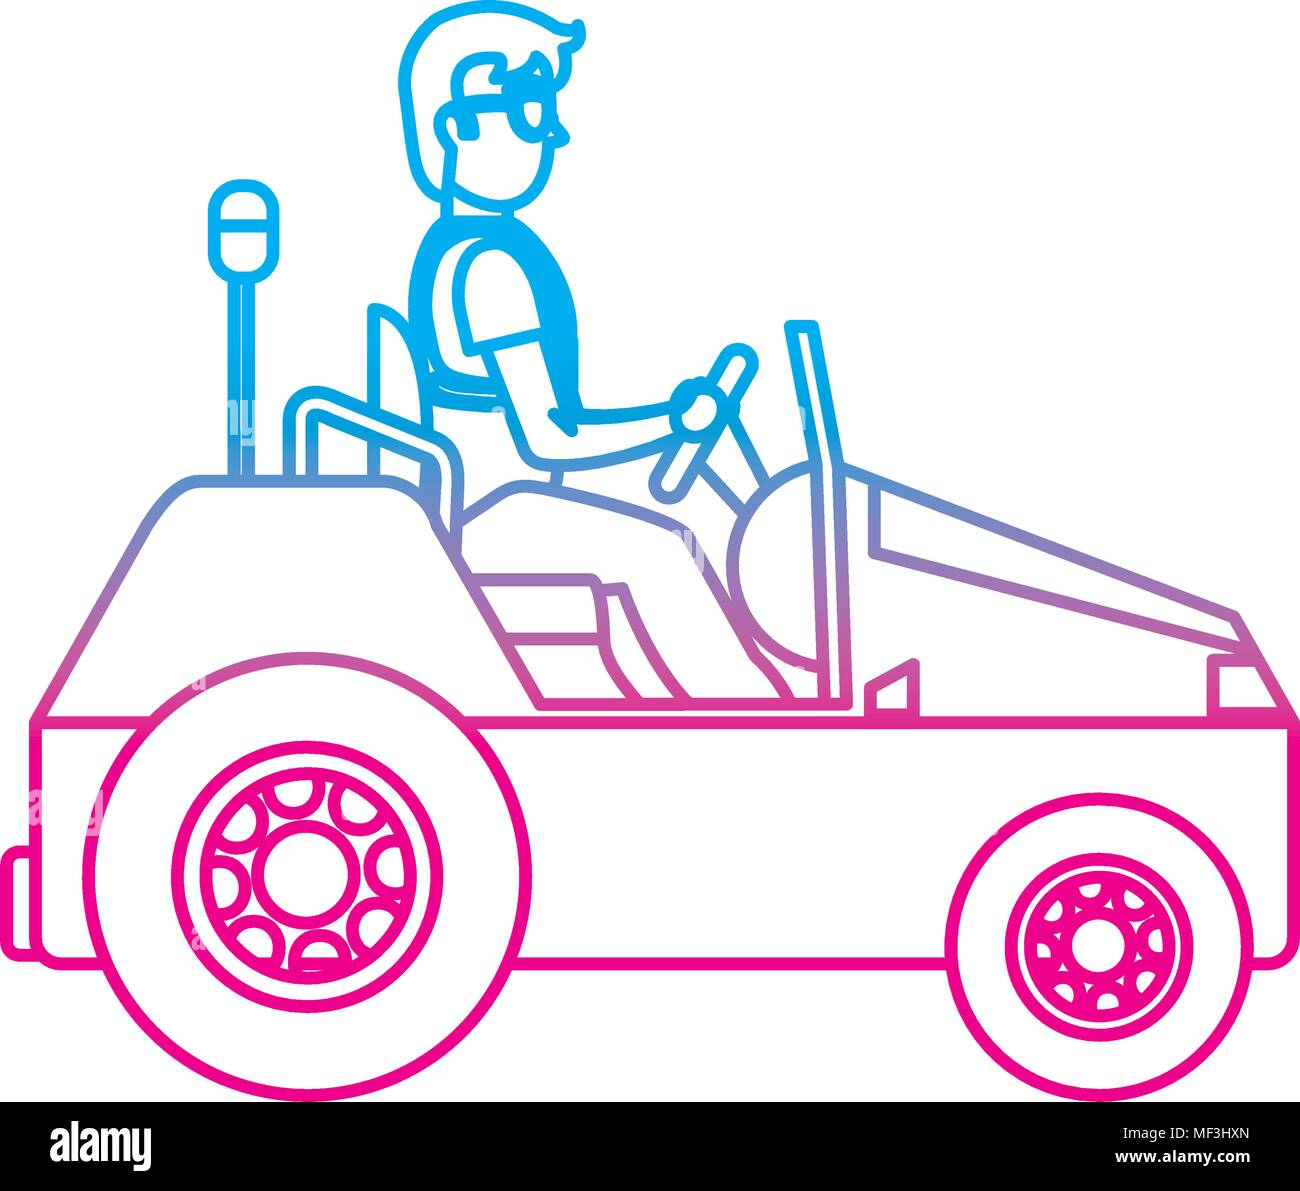 degraded line man with luggage towing vehicle service vector